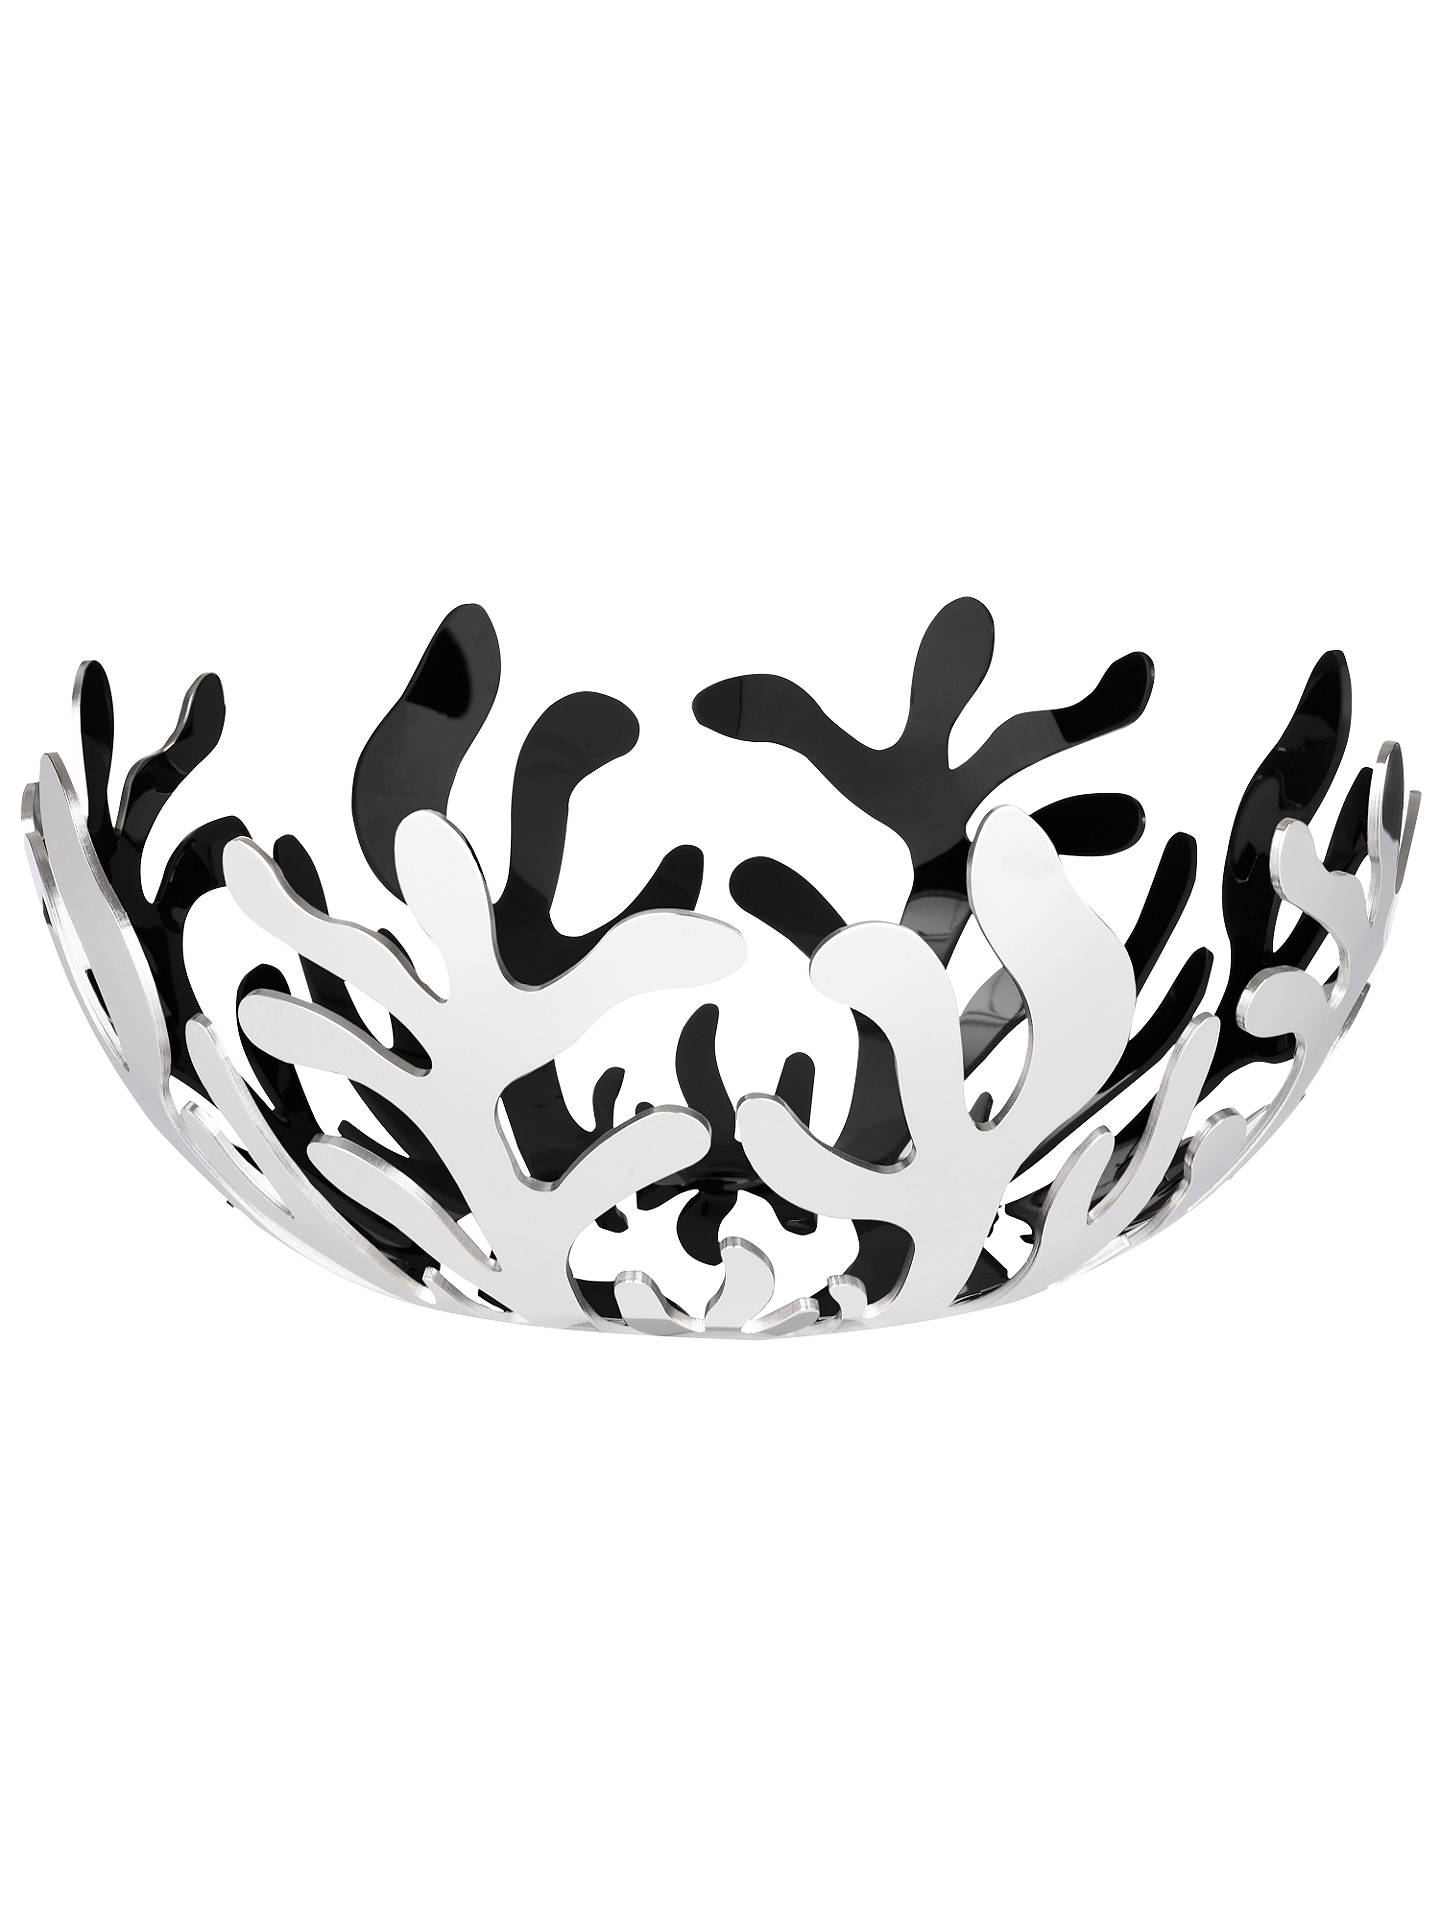 BuyAlessi Mediterraneo Stainless Steel Fruit Basket, Dia.29cm Online at johnlewis.com